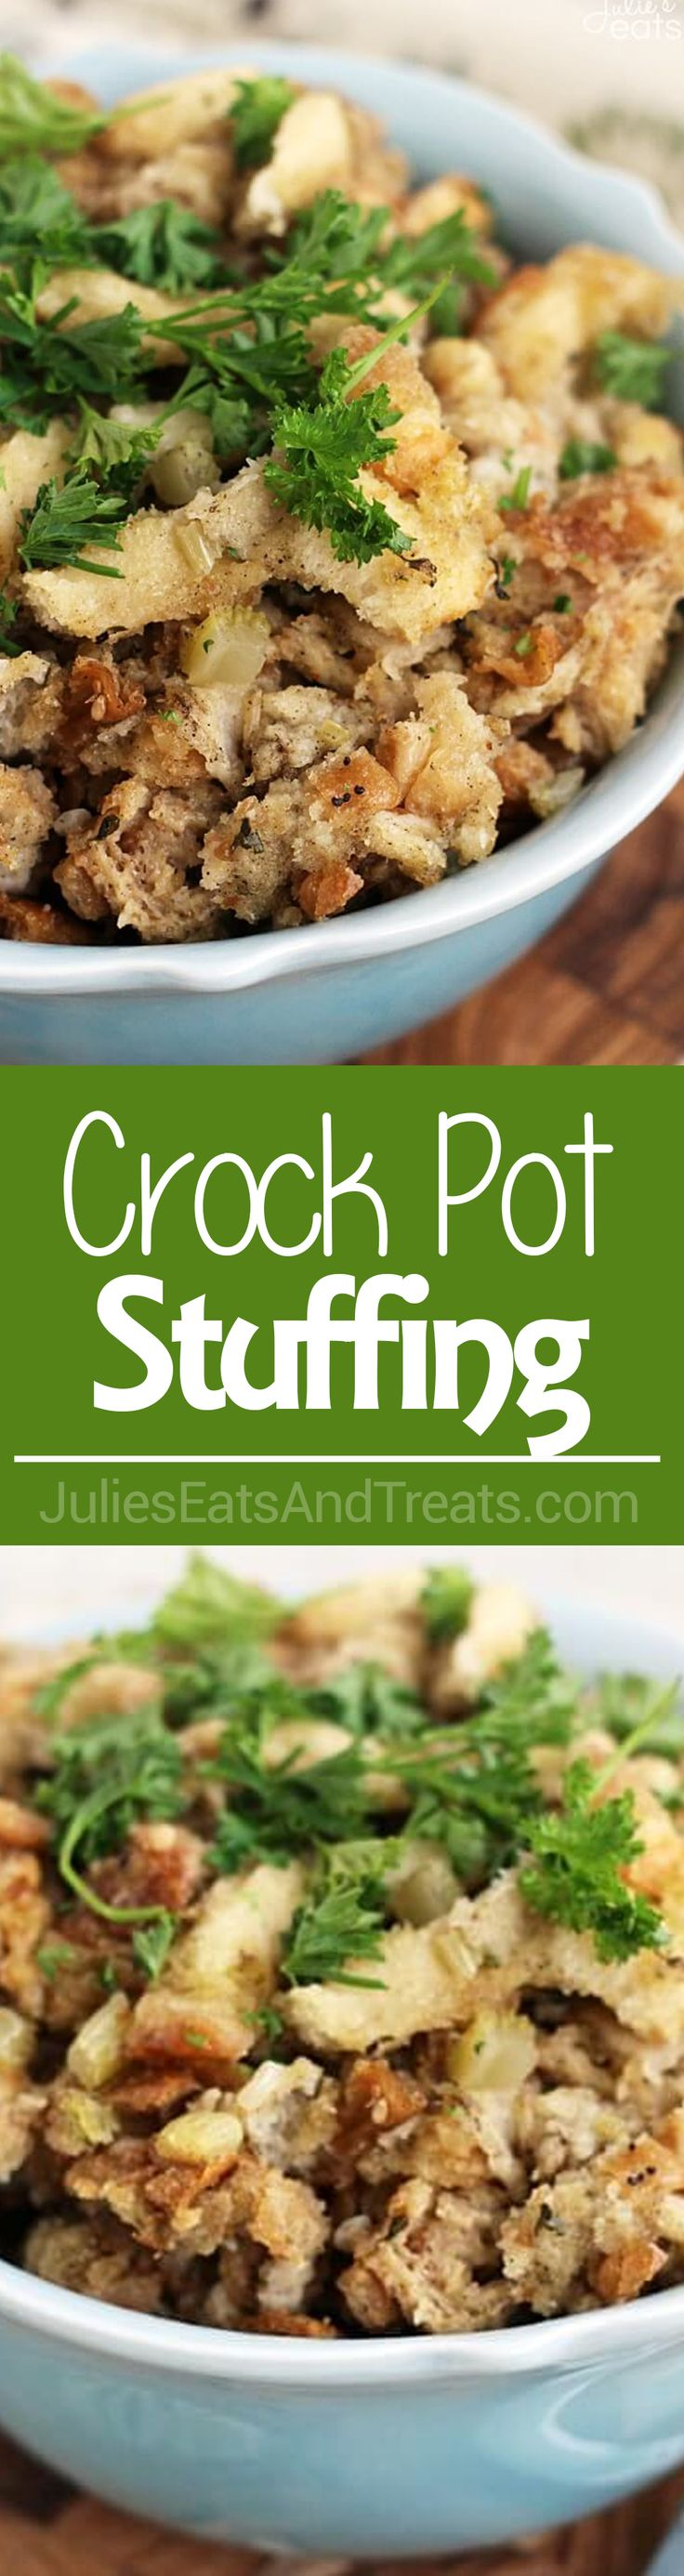 Crock Pot Stuffing ~ Slow Cooked Stuffing Stuffed with Herbs & Seasonings! So Easy and Delicious!  via @julieseats